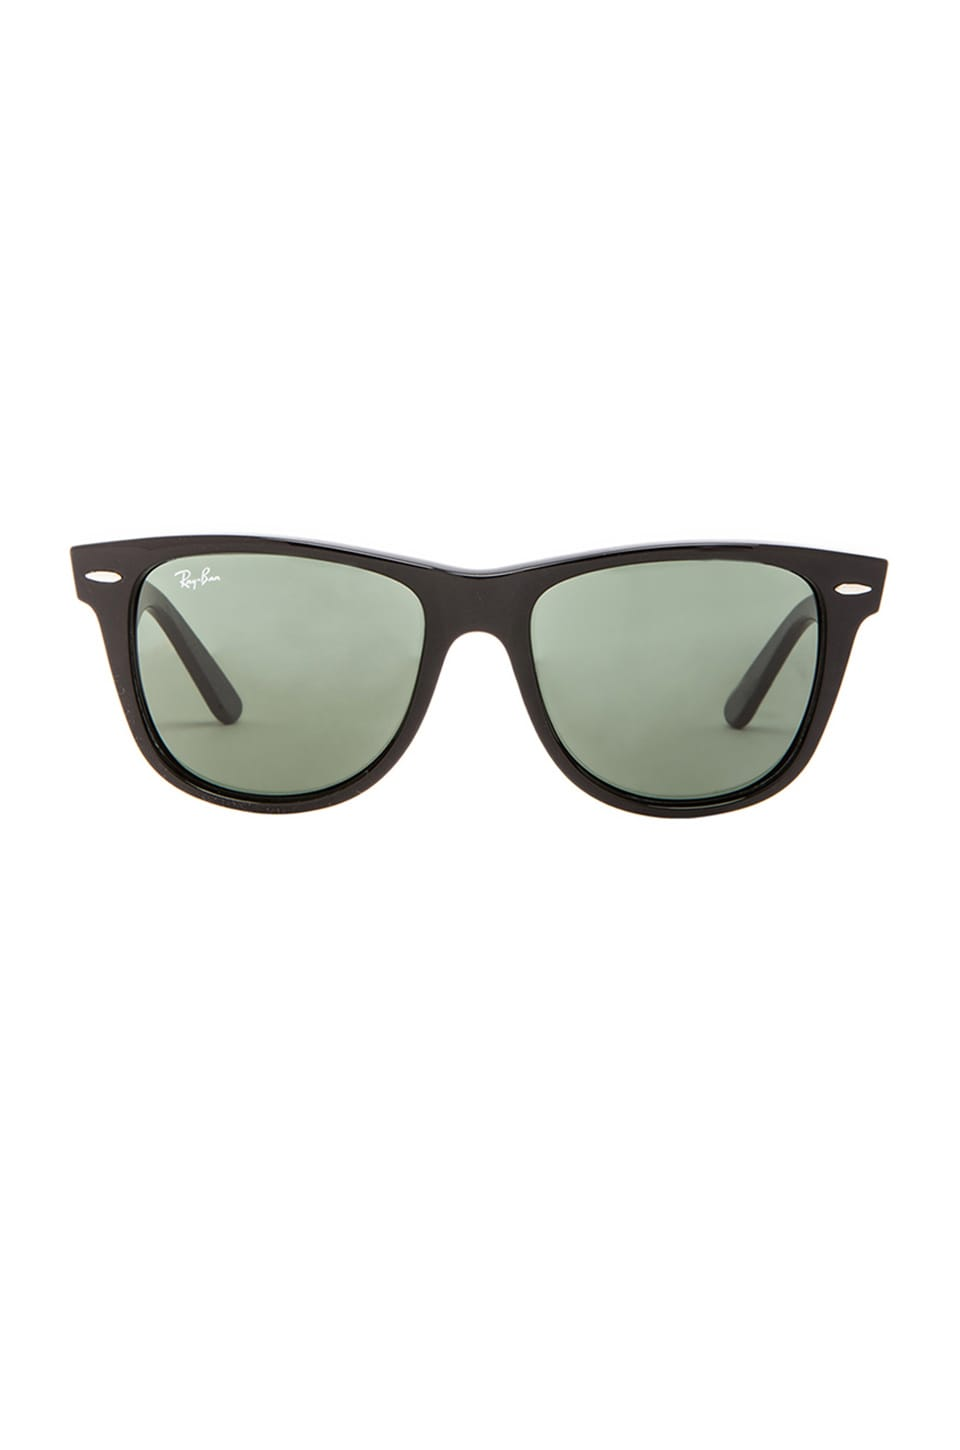 Ray-Ban Oversized Original Wayfarer in Black